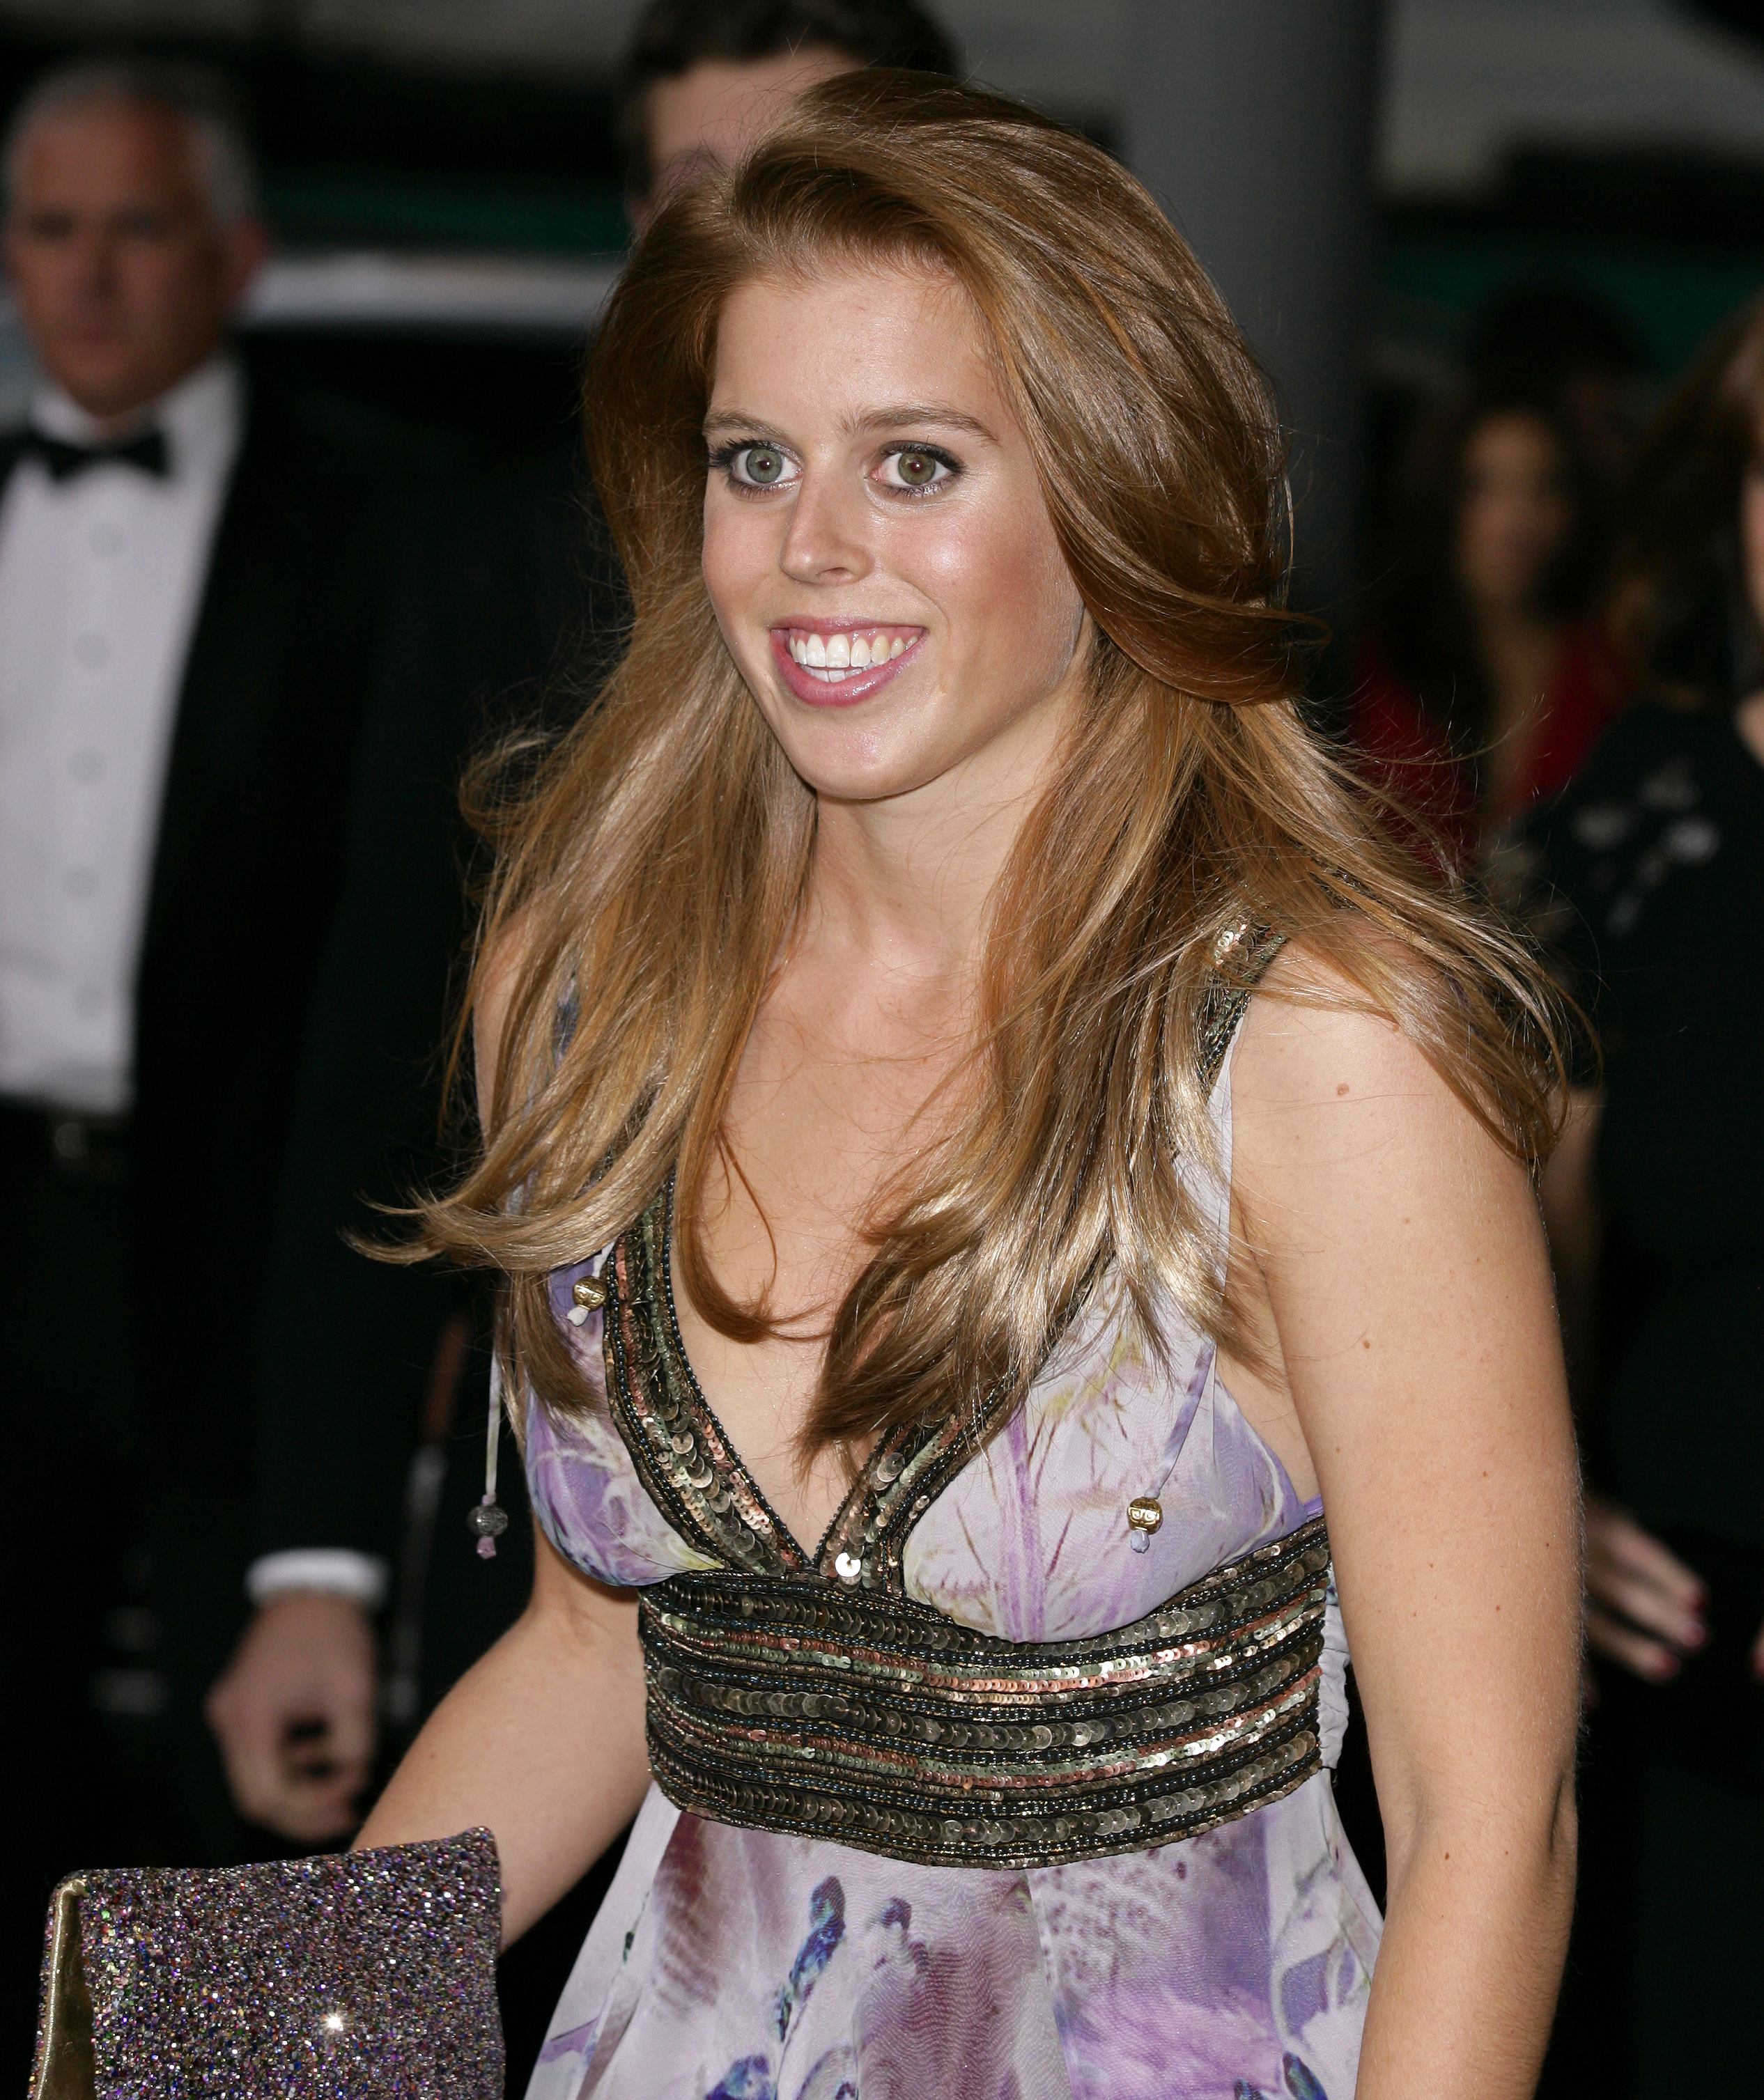 Princess Beatrice smiles in London.